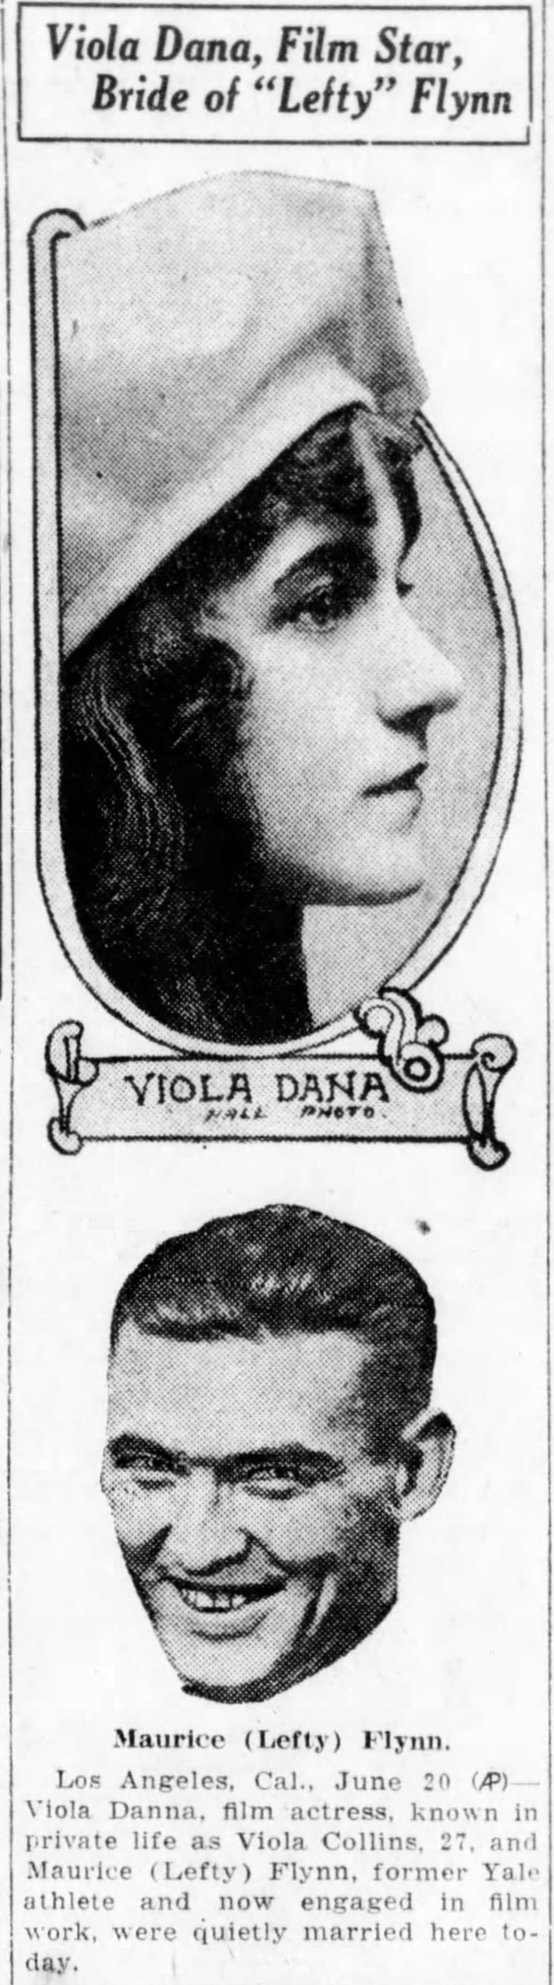 Source: Brooklyn Daily Eagle, June 21, 1925, page 1.